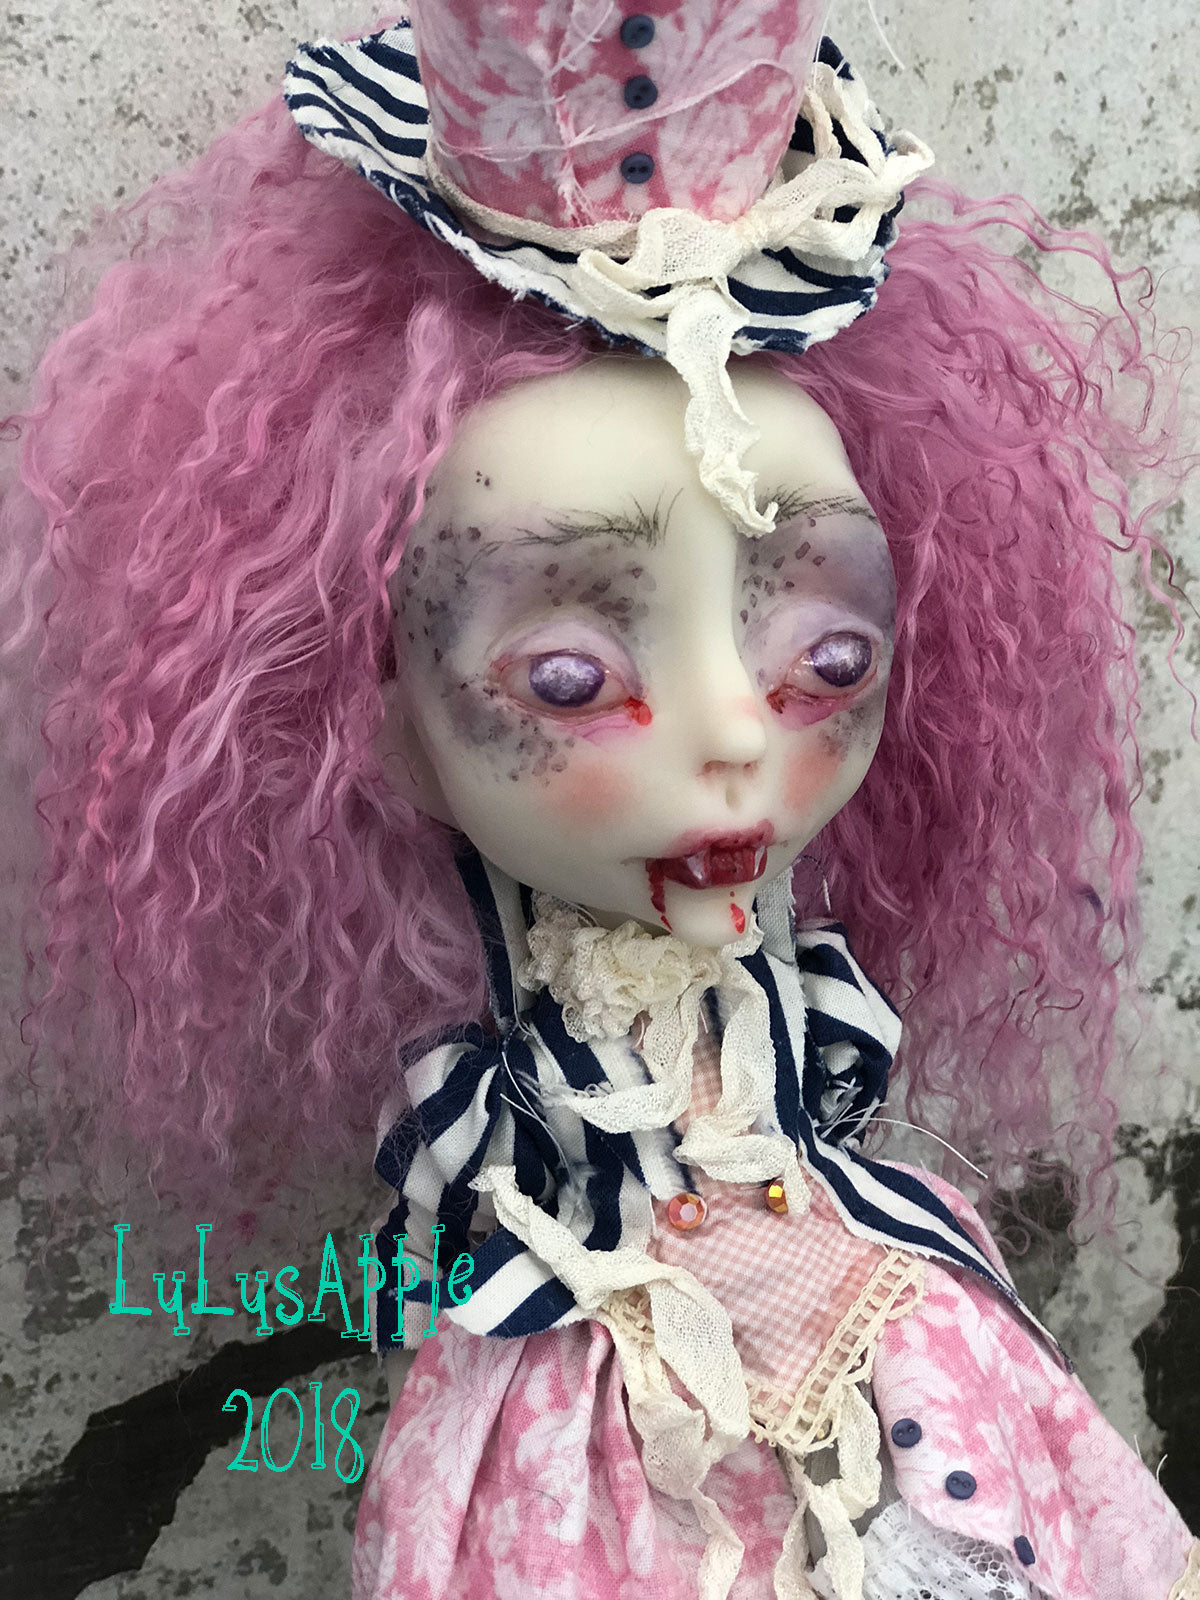 Bristol the Biter Gothic Victorian Vampire LuLusApple Art Doll